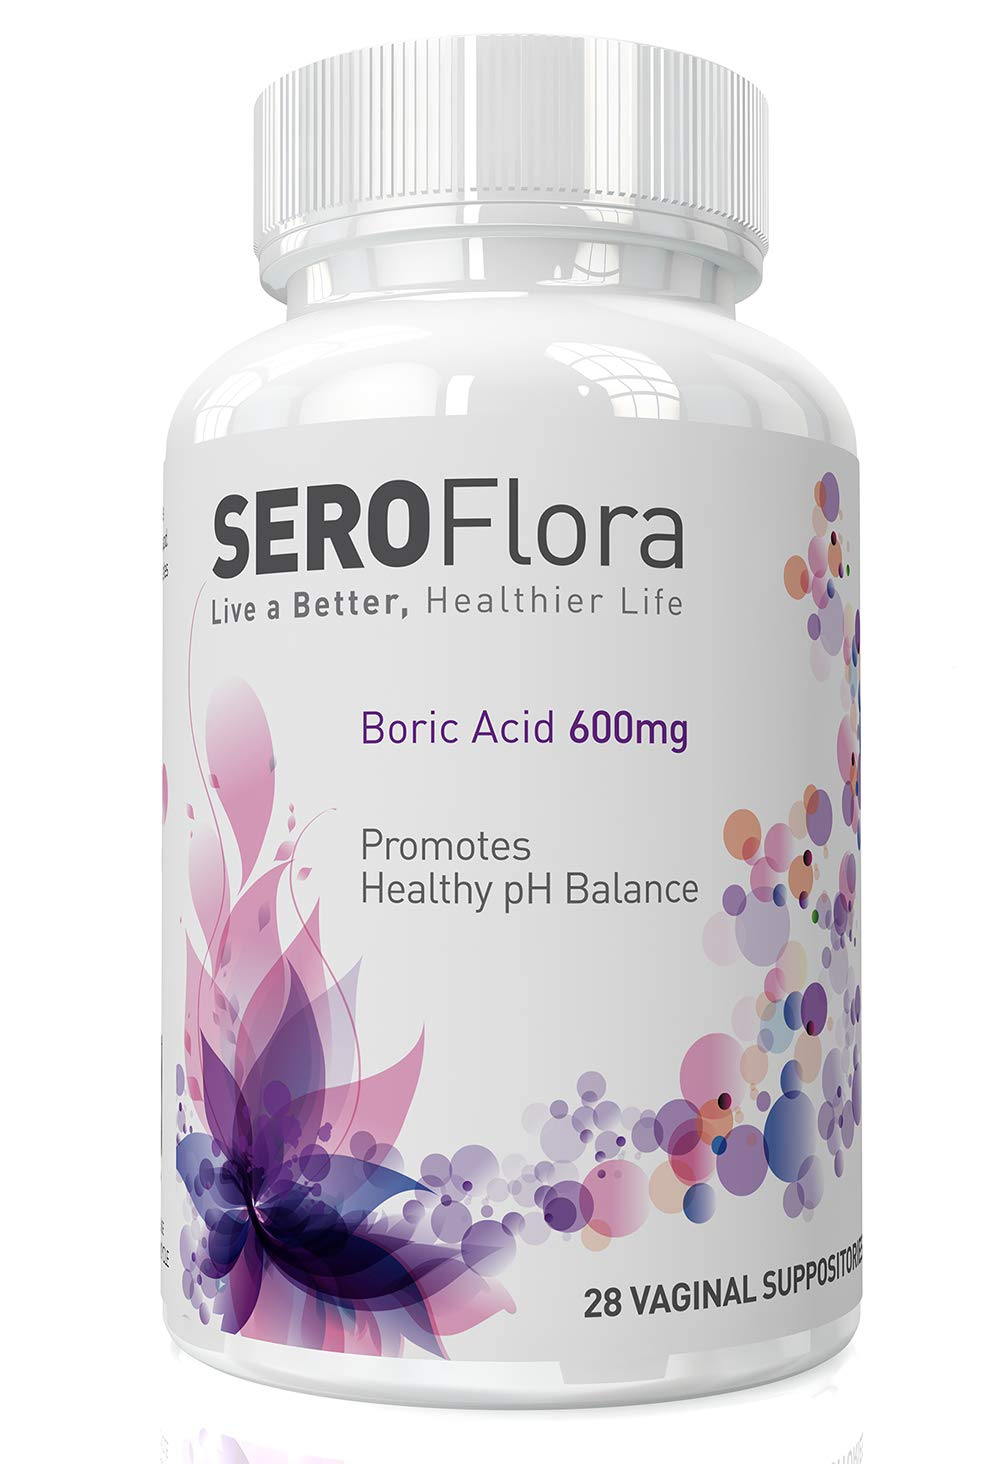 Seroflora Boric Acid Vaginal Suppositories 600mg - Bottle of 60 - pH Balance for Women - Feminine Care - Made in USA by Seroflora